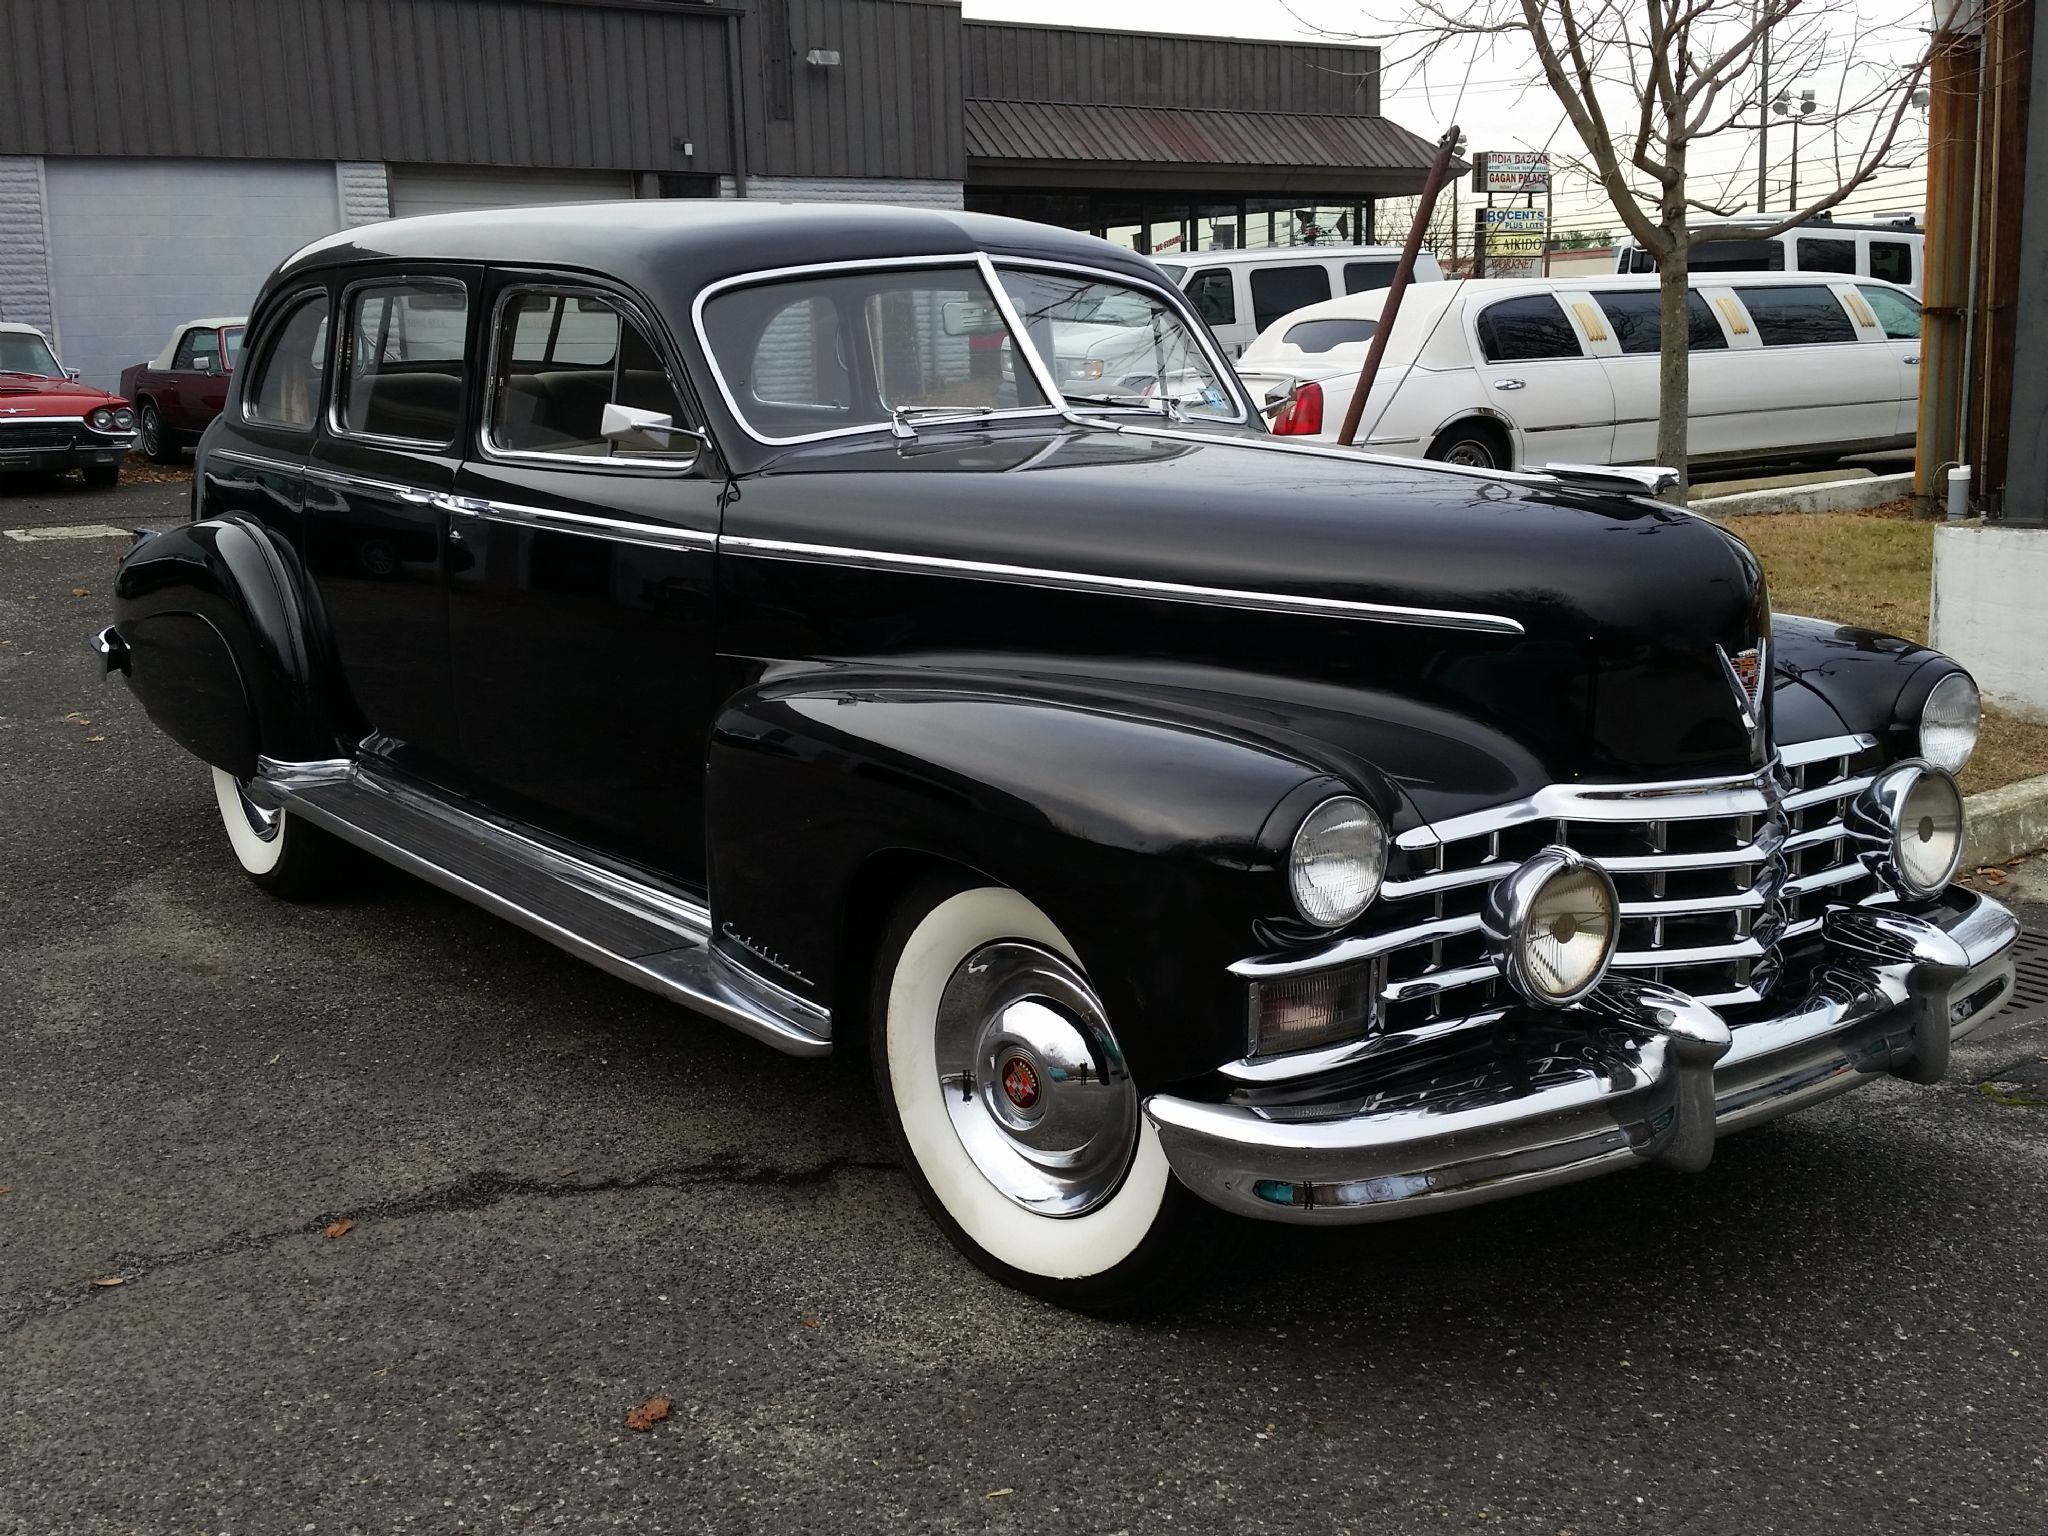 1947 CADILLAC SORRY JUST SOLD!!! FLEETWOOD 1